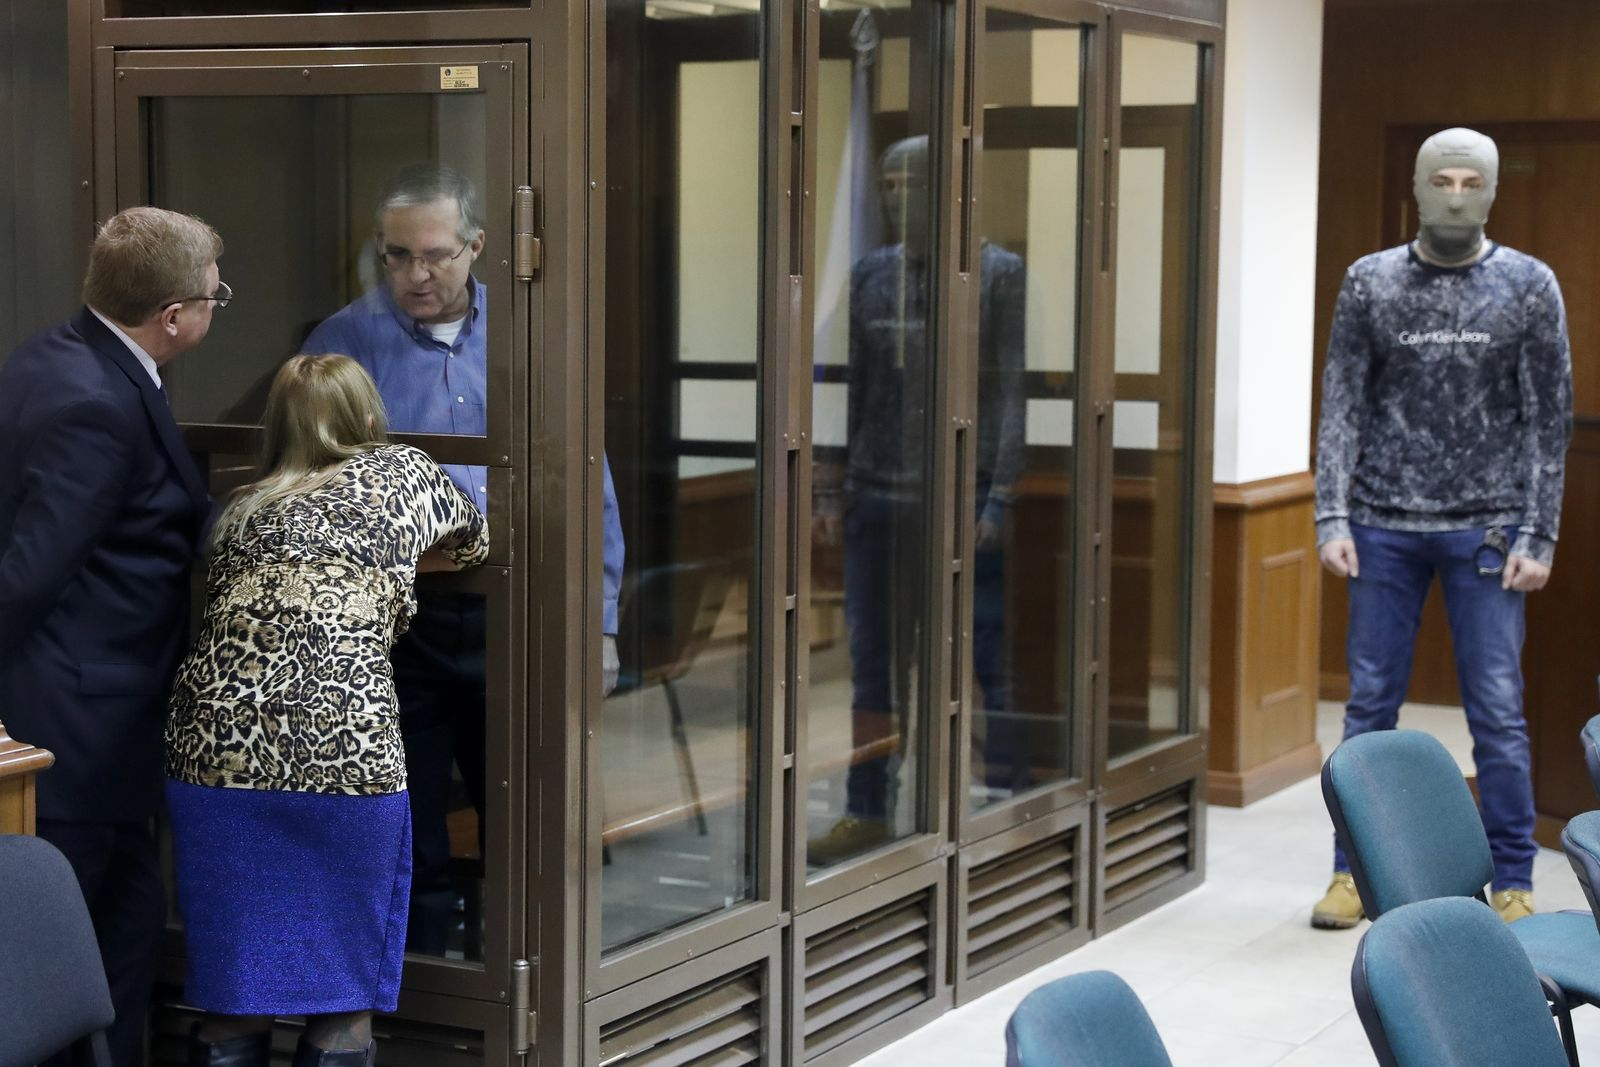 Paul Whelan, a former U.S. Marine, who was arrested in Moscow at the end of last year looks through a cage's glass as he speaks to his lawyers in a court room in Moscow, Russia, Tuesday, Jan. 22, 2019. (AP Photo/Pavel Golovkin)